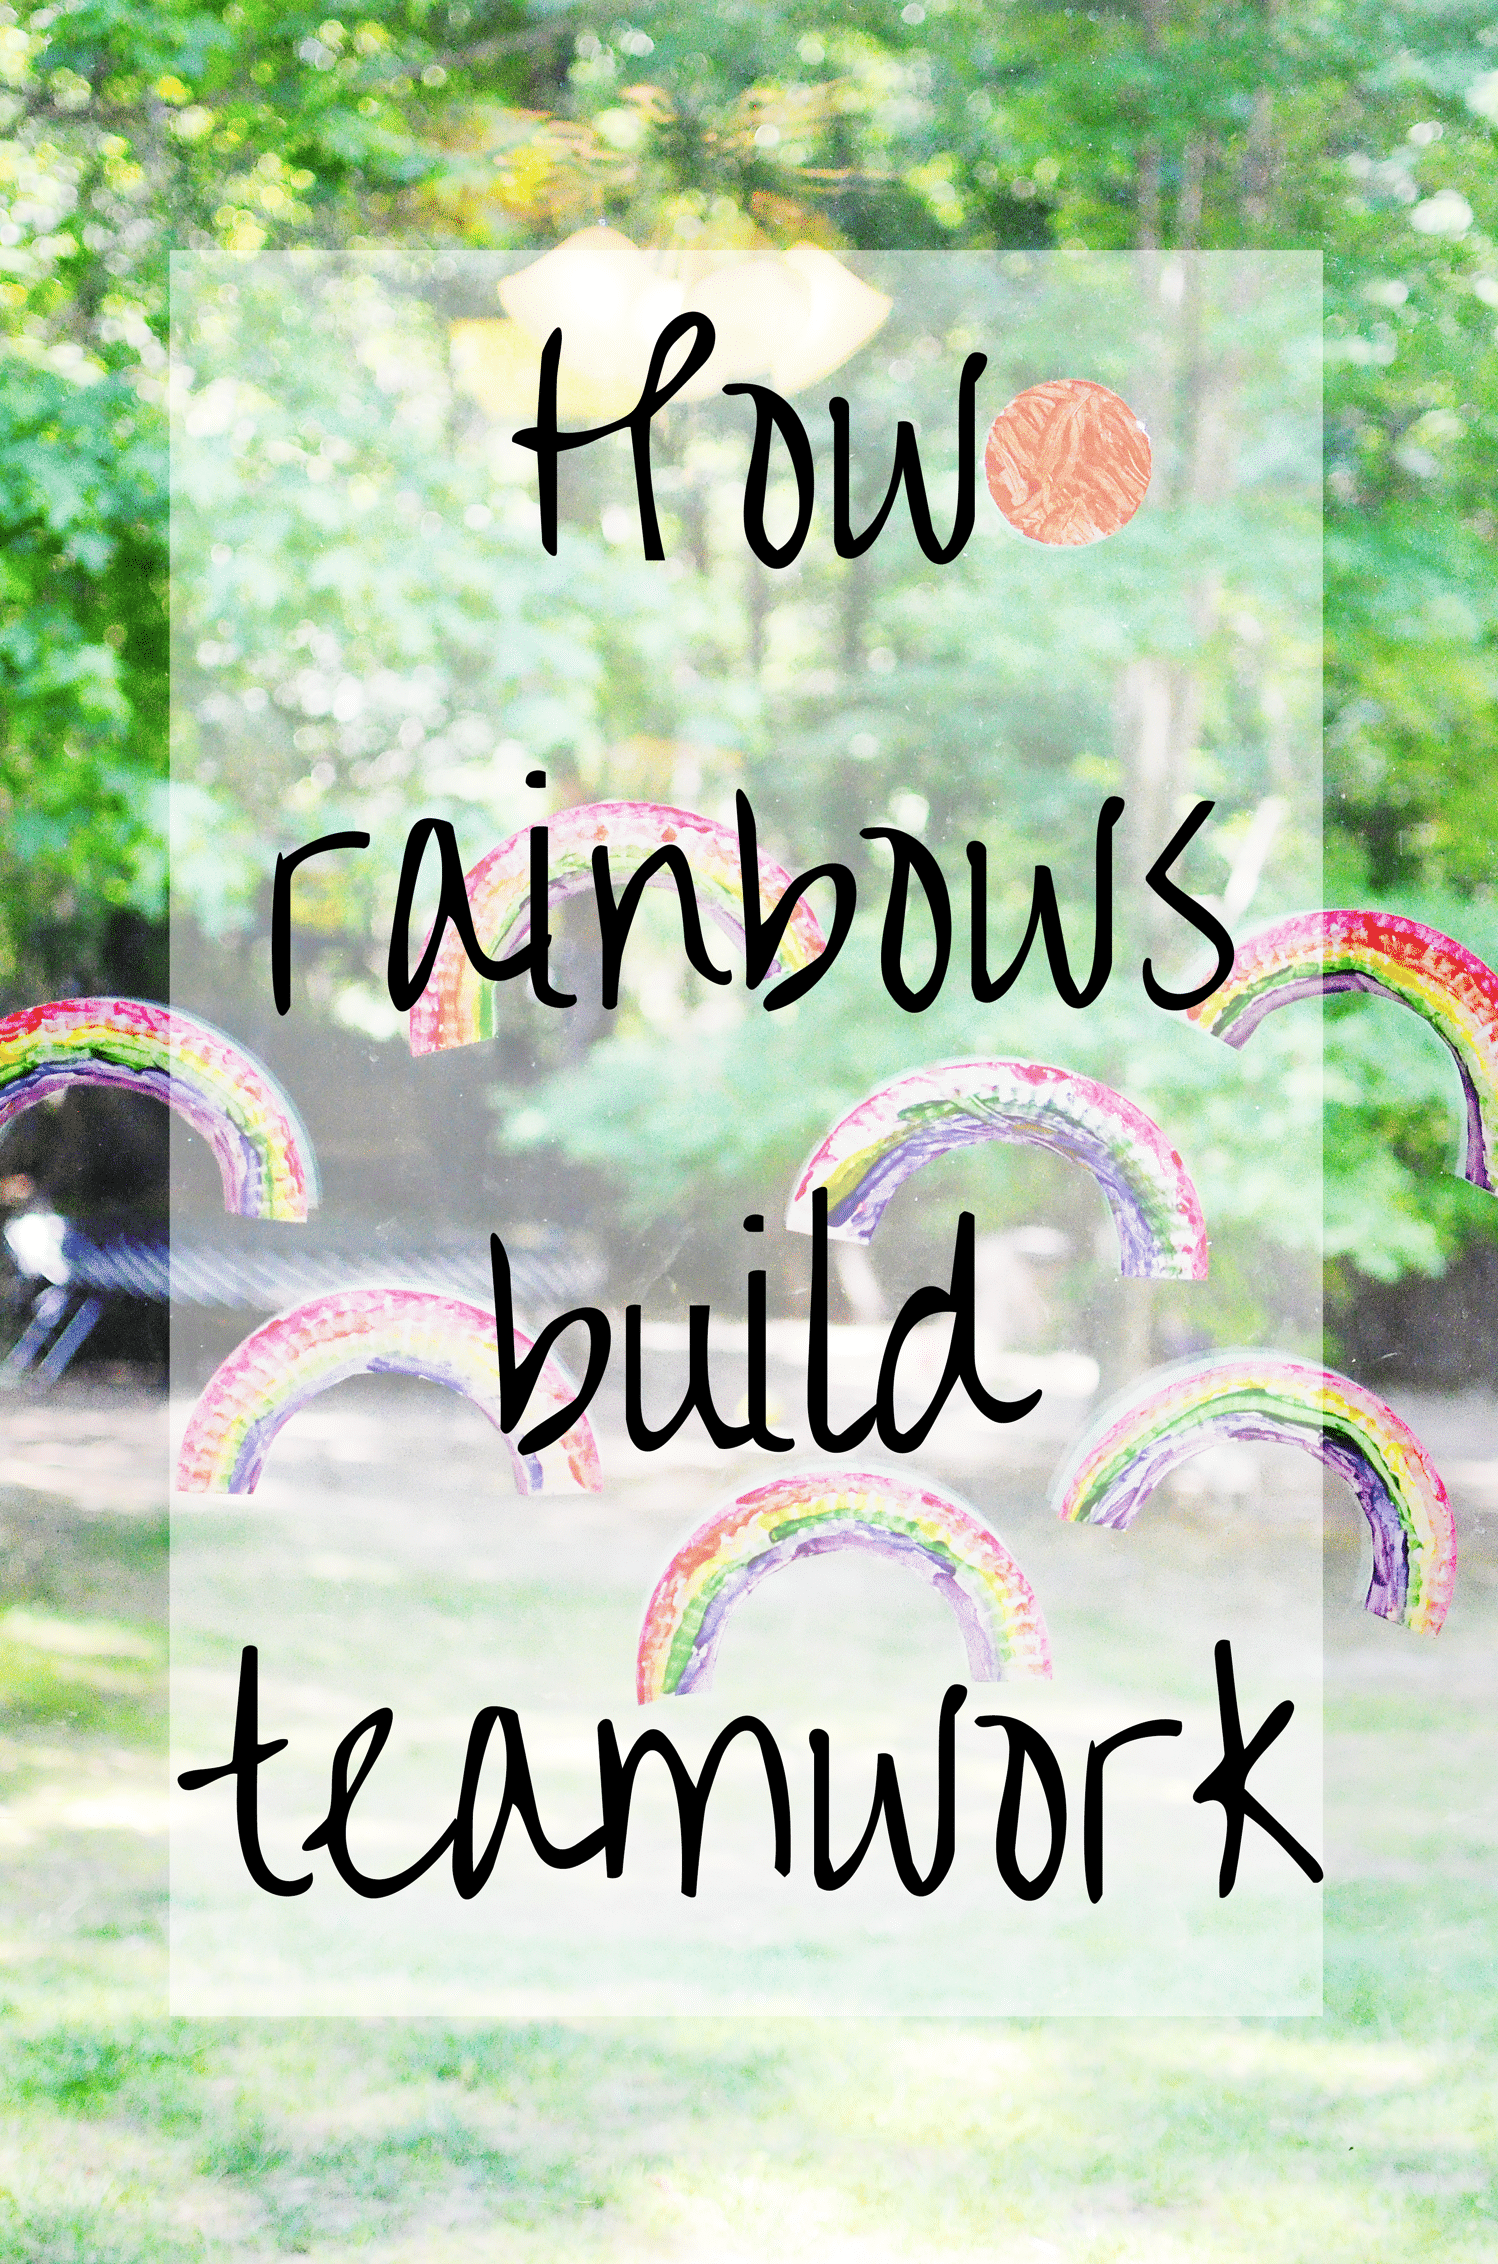 How rainbows build teamwork